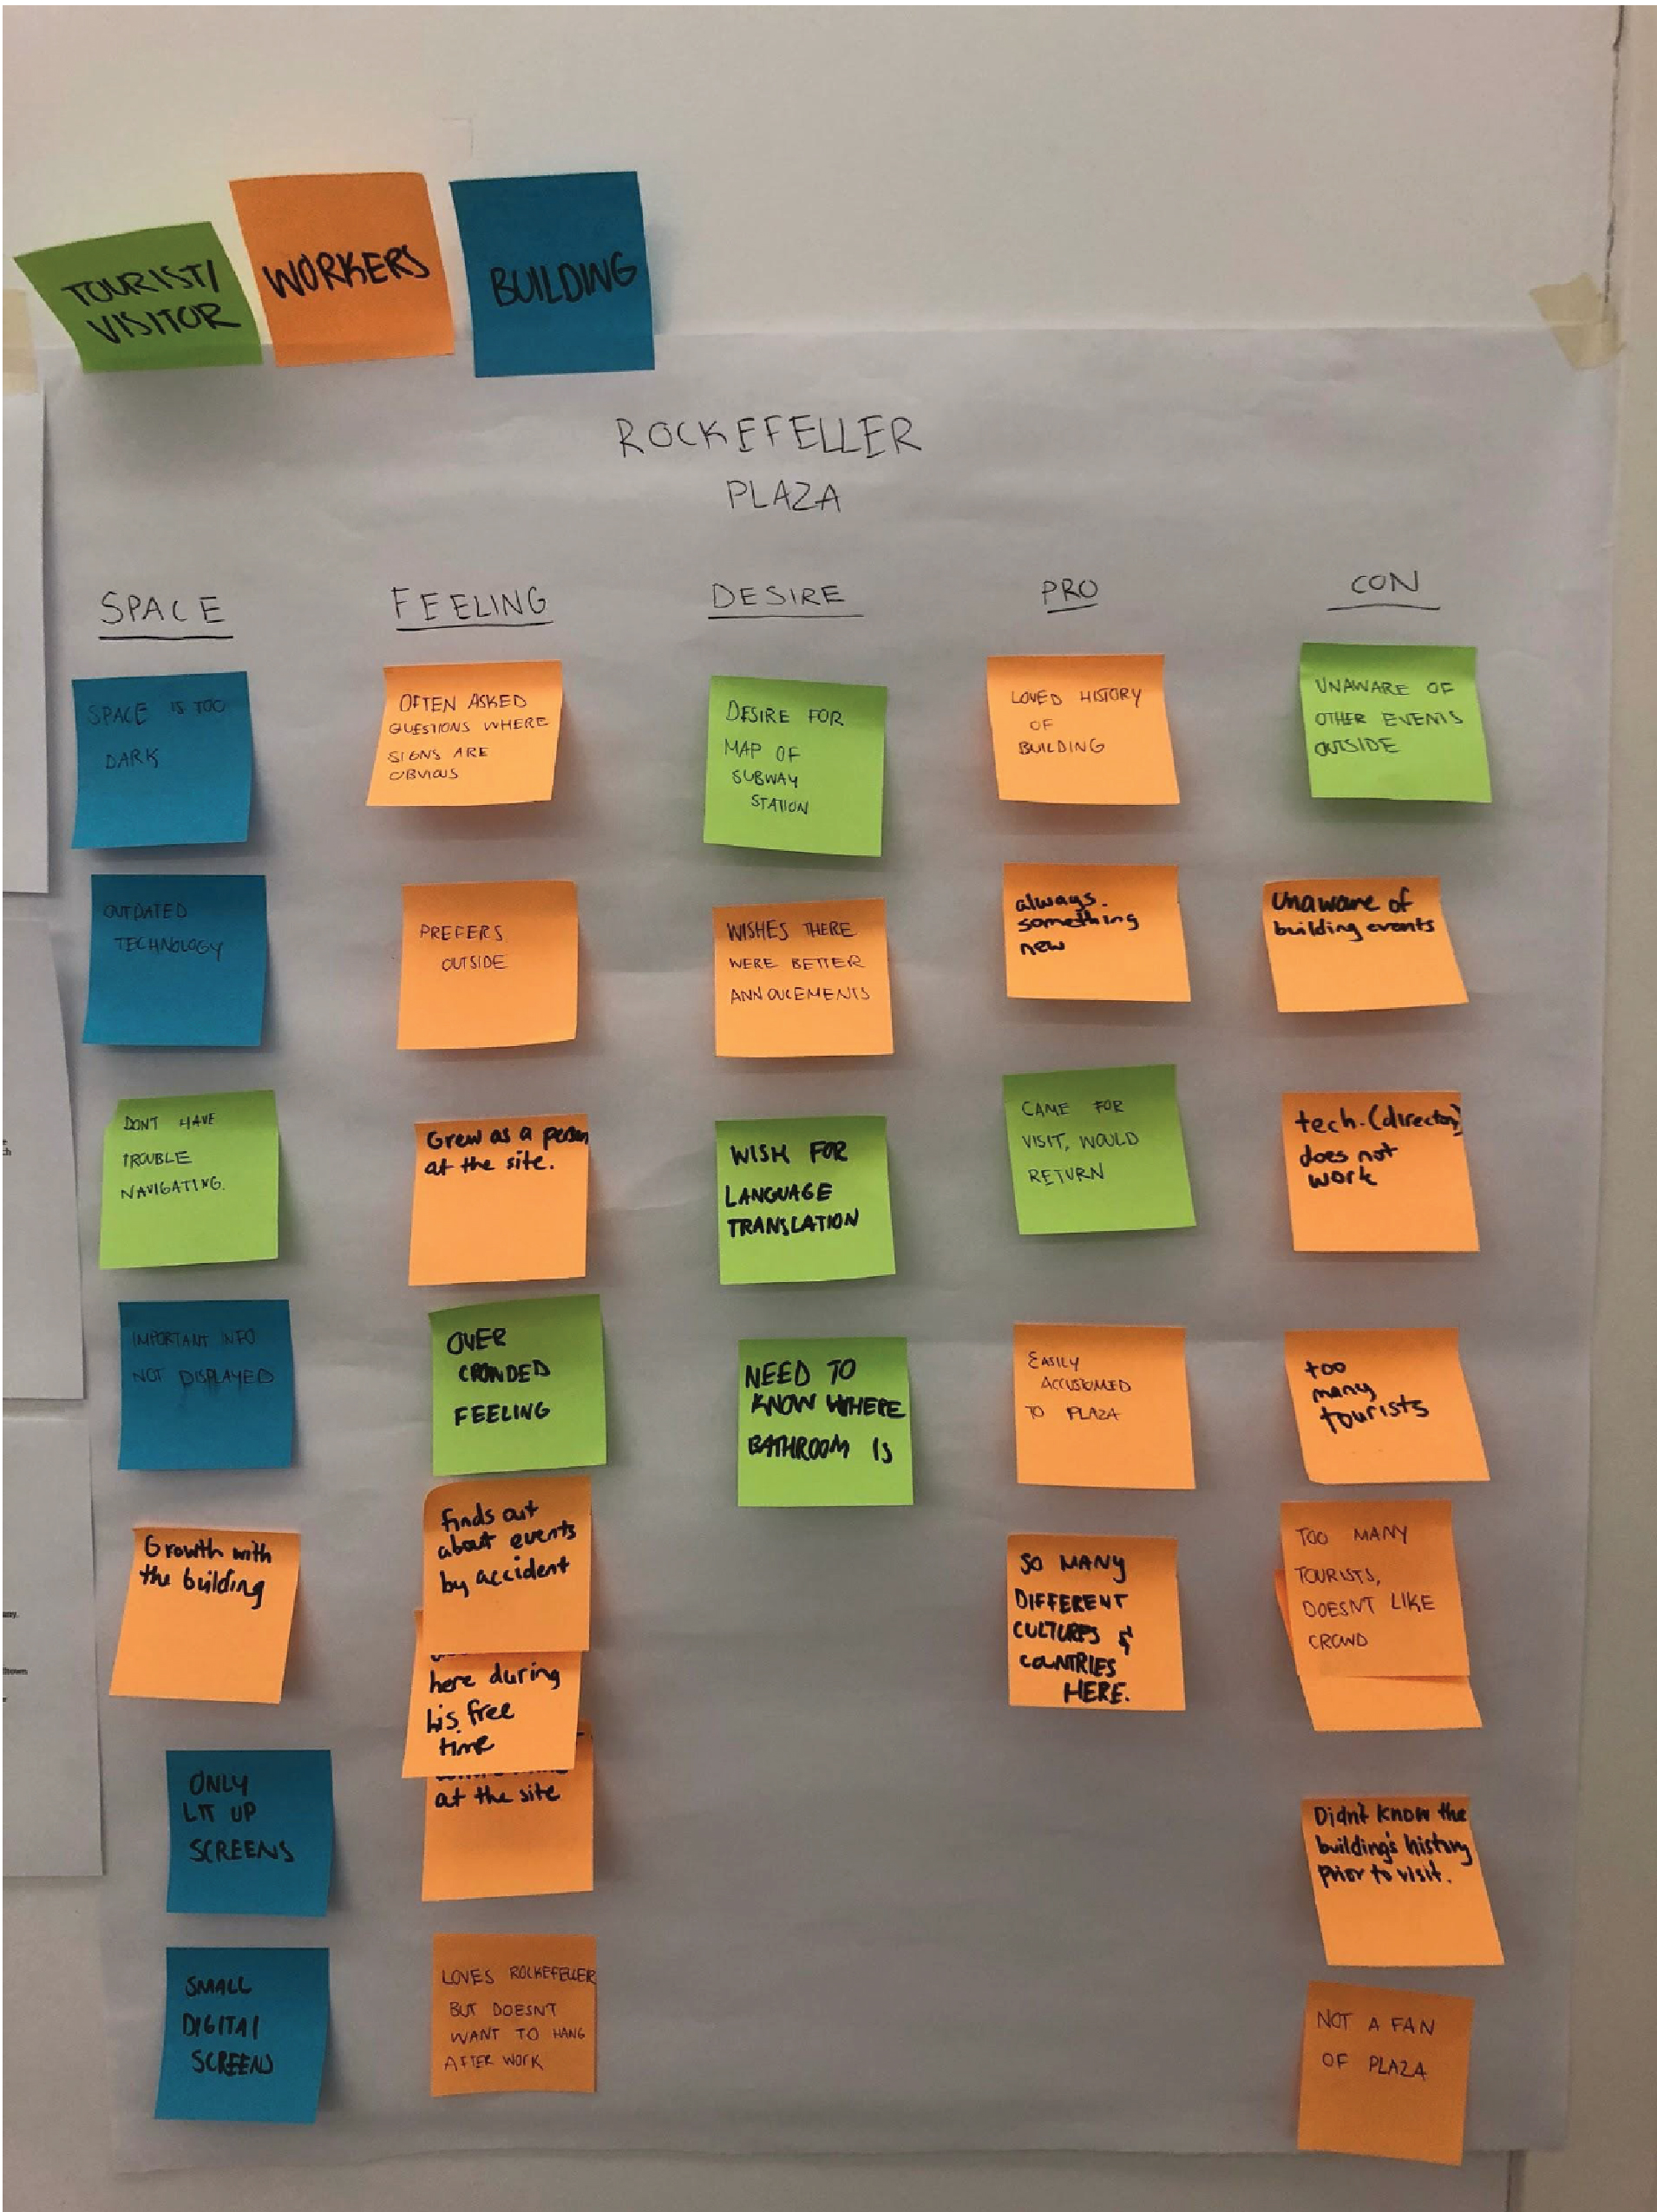 affinity_map_semplice